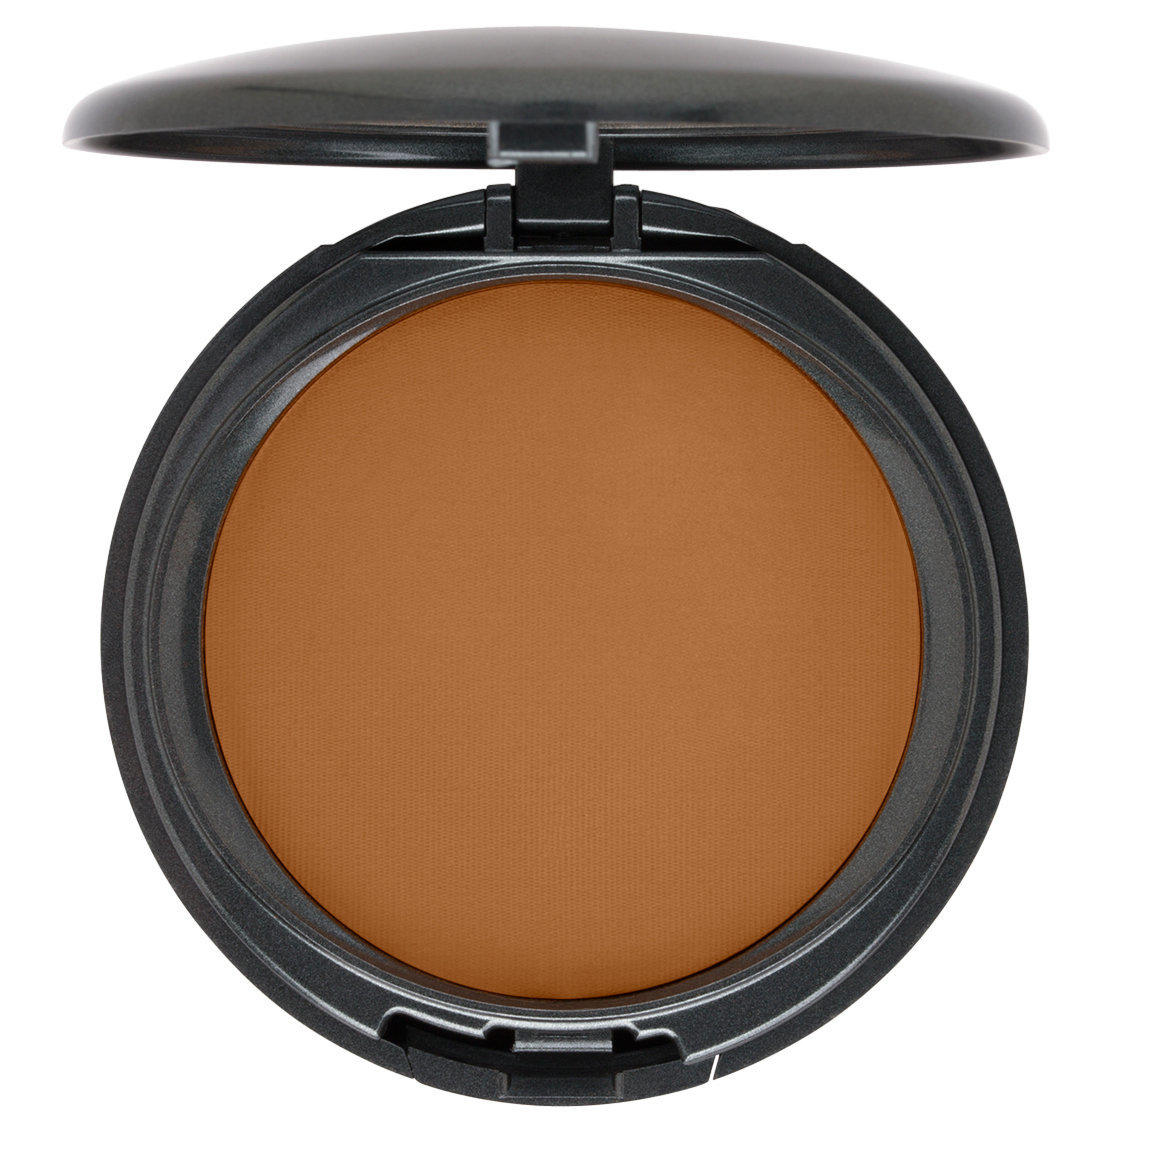 Cover FX Pressed Mineral Foundation N 80